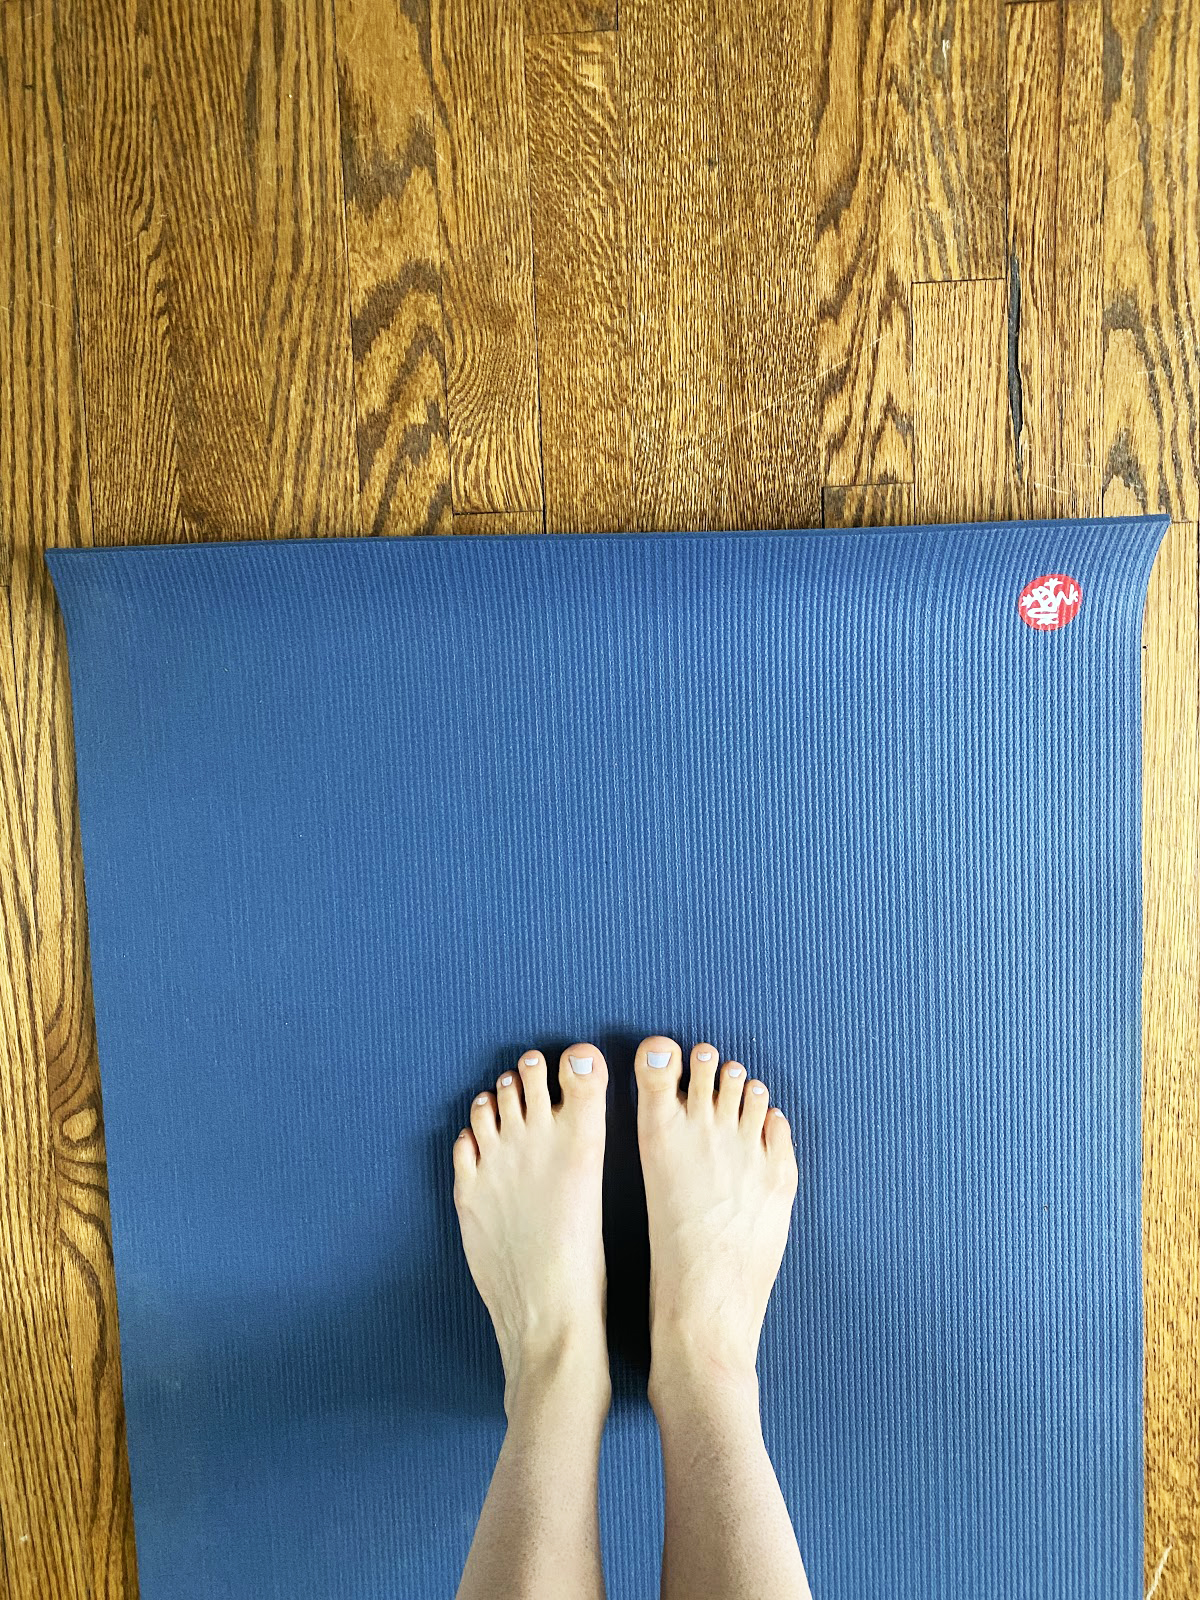 A photo of two feet with pale blue nail polish on a blue yoga mat on a wooden floor.